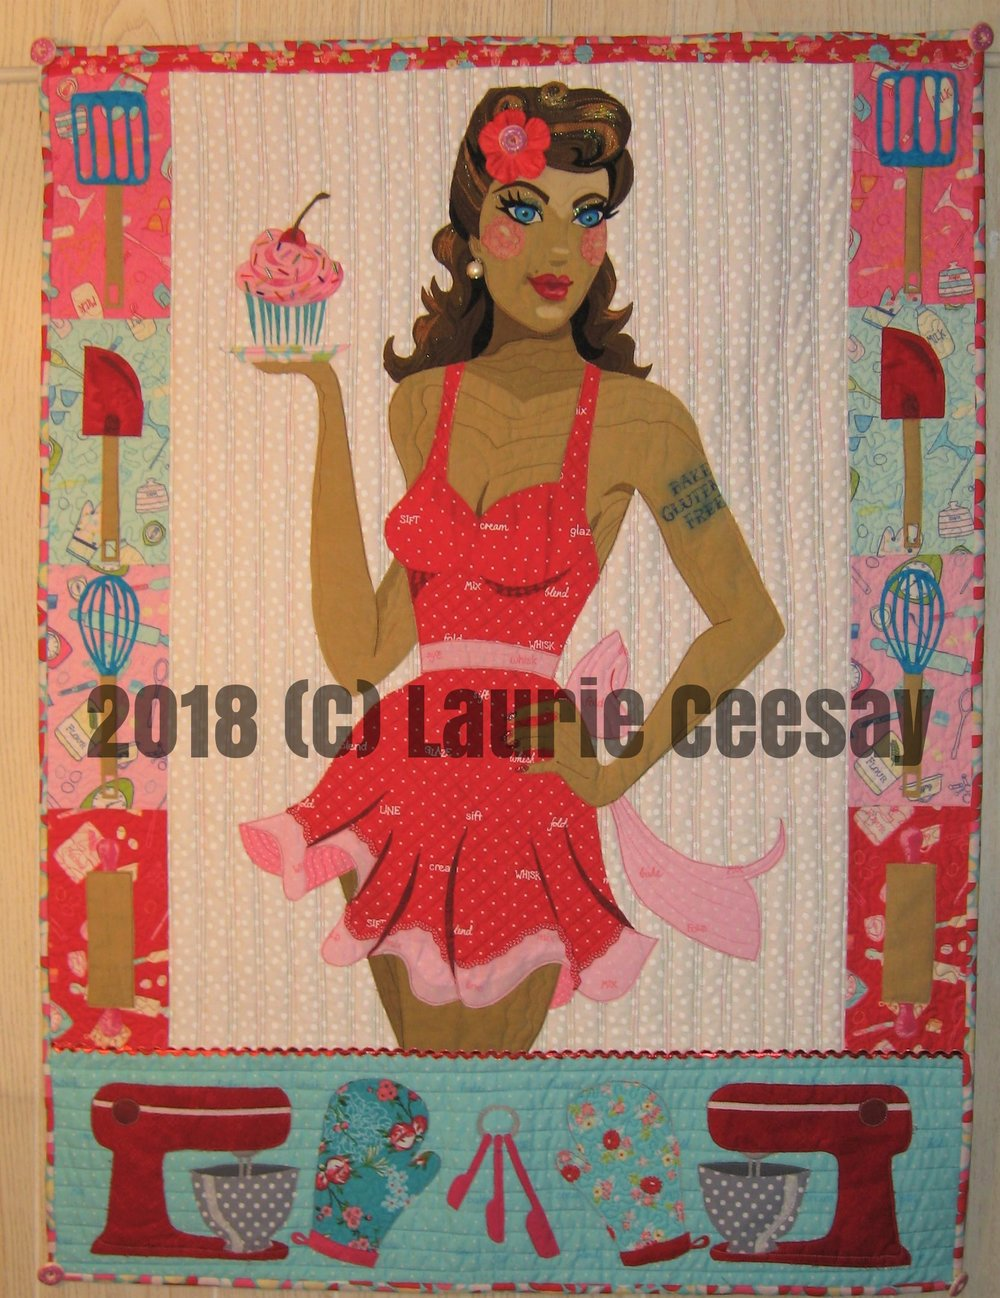 "The Wisconsin Quilt Expo is held in early September in Madison and they have been having a special challenge at their quilt expo and the theme for 2018 is called Bake Off. I immediately thought of a pin up girl in the kitchen when I designed this quilt. The only rule was the size of 30"" wide by 40"" long which is typically larger than I work. The pin up girl is wearing a sexy ruffly apron and holding a cupcake. I added baking utensils to the sides of the project to get the 30"" width. I added a wide bottom area with mirror images of a Mix Master, oven mitts and measuring spoons.  This project began with a purchase from www.craftsy.com where I purchased a variety of fabrics with a baking theme. I used a print with baking words in the apron, sash and bow. I added a red and white trim near the bottom edge.. The fingernails received red glitter nail polish."